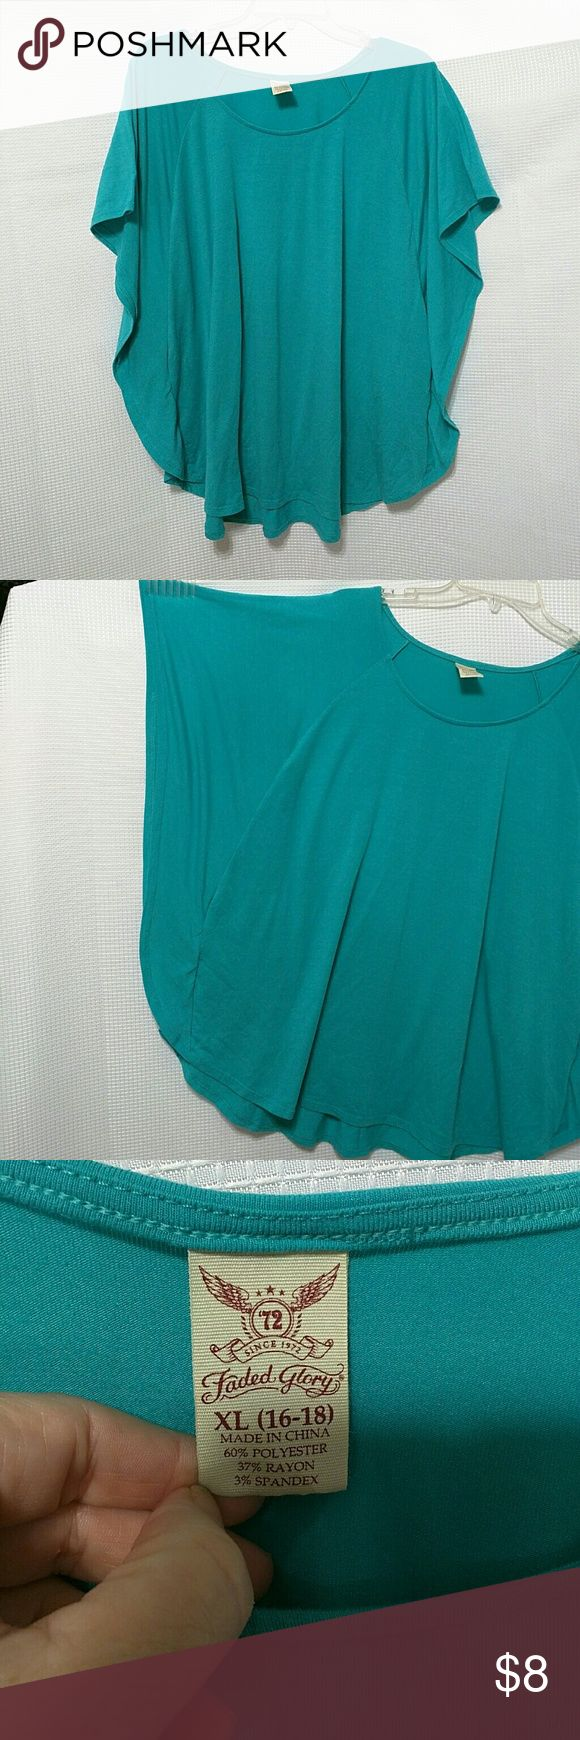 Turquoise Green Batwing Top XL XL (16-18) Very Soft Batwing Top turquoise green, polyester, rayon, spandex. Machine wash. Tops